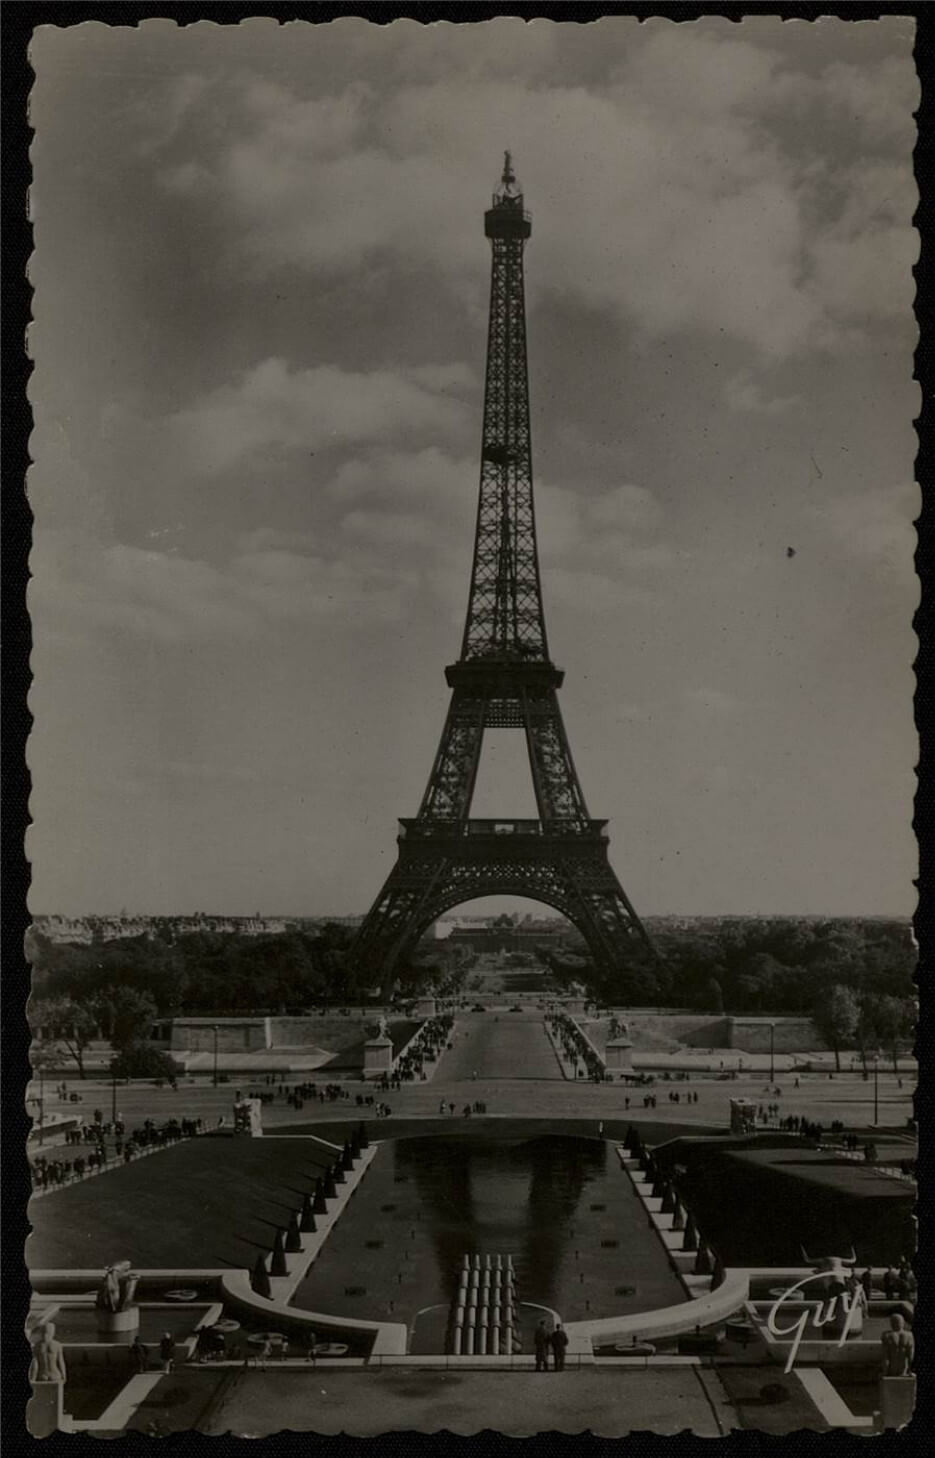 Postcards from Paris: From lockdown to liberation under Nazi occupation